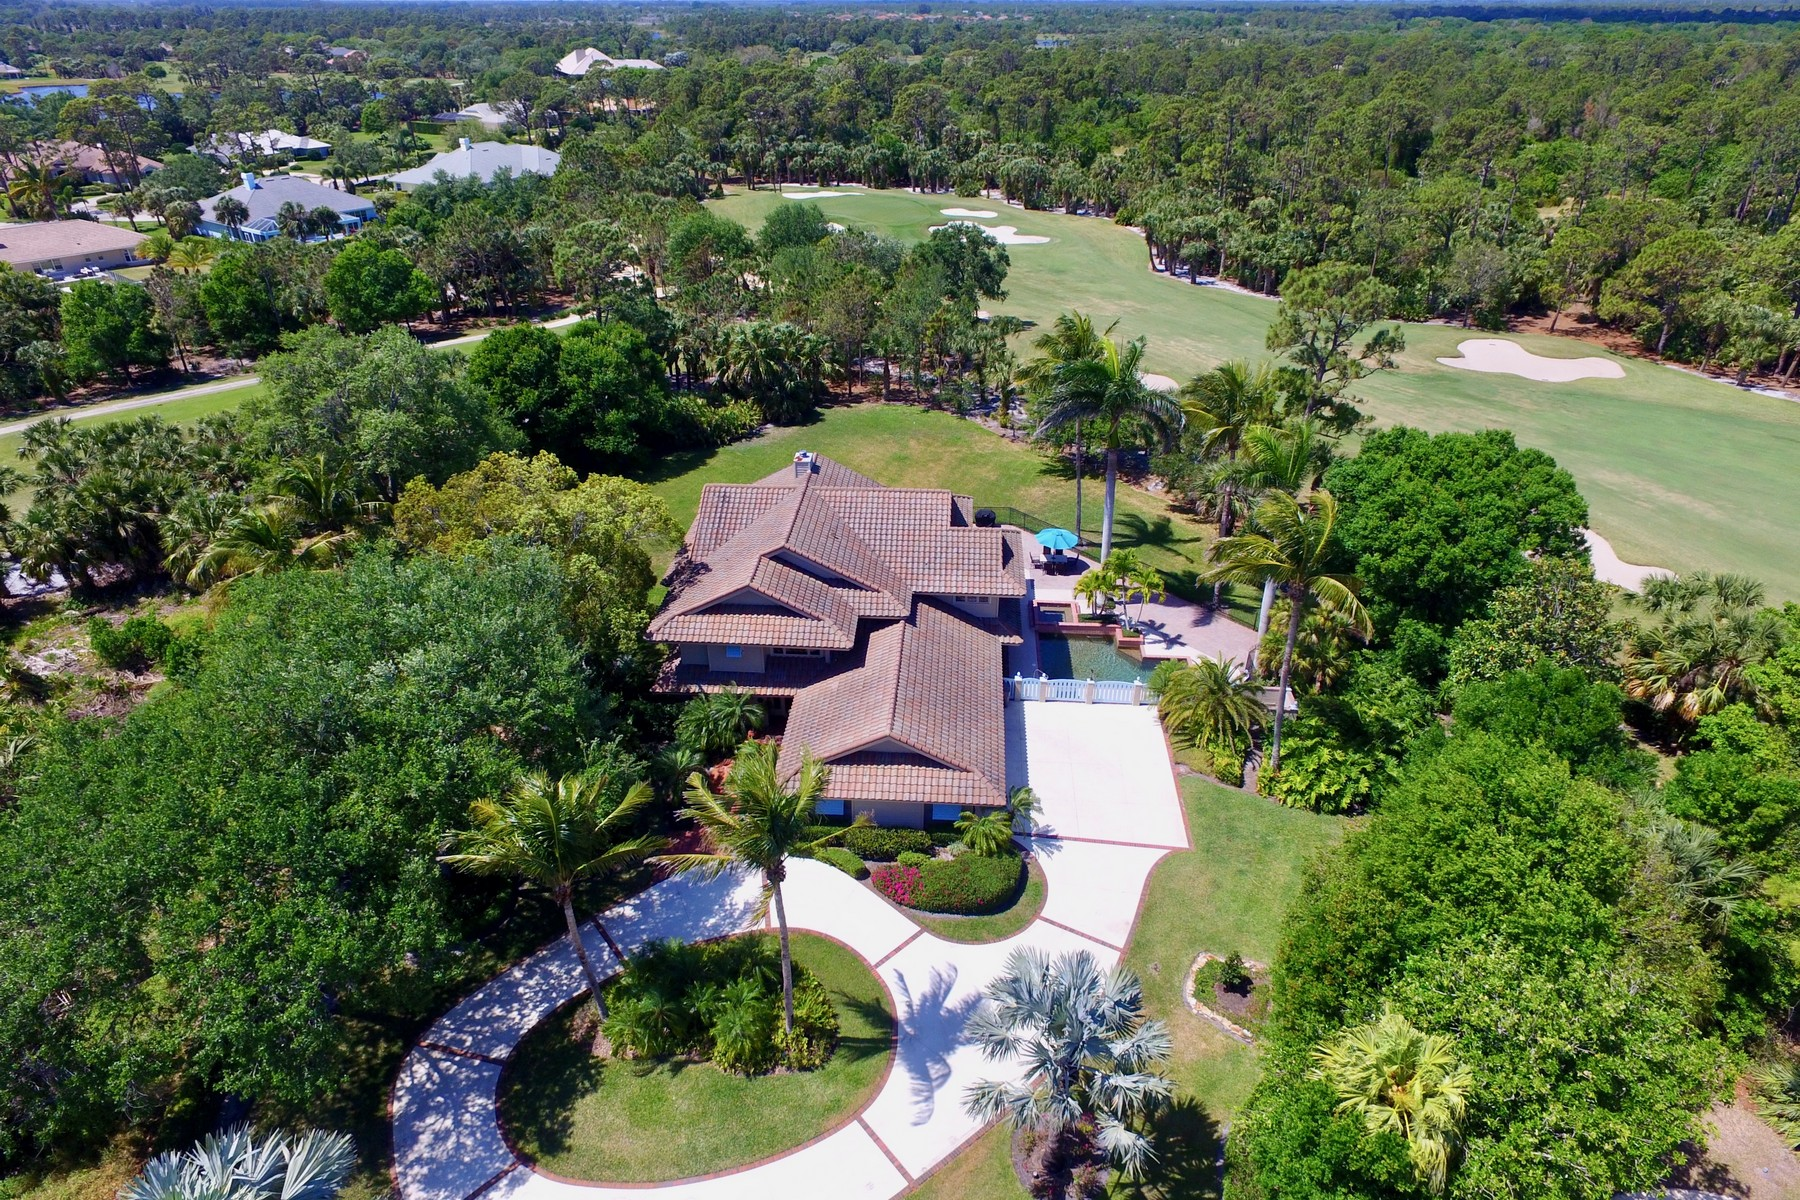 Casa Unifamiliar por un Venta en Breathtaking 4200+ SF Masterpiece (Golf Optional) 5885 Turnberry Lane Vero Beach, Florida 32967 Estados Unidos